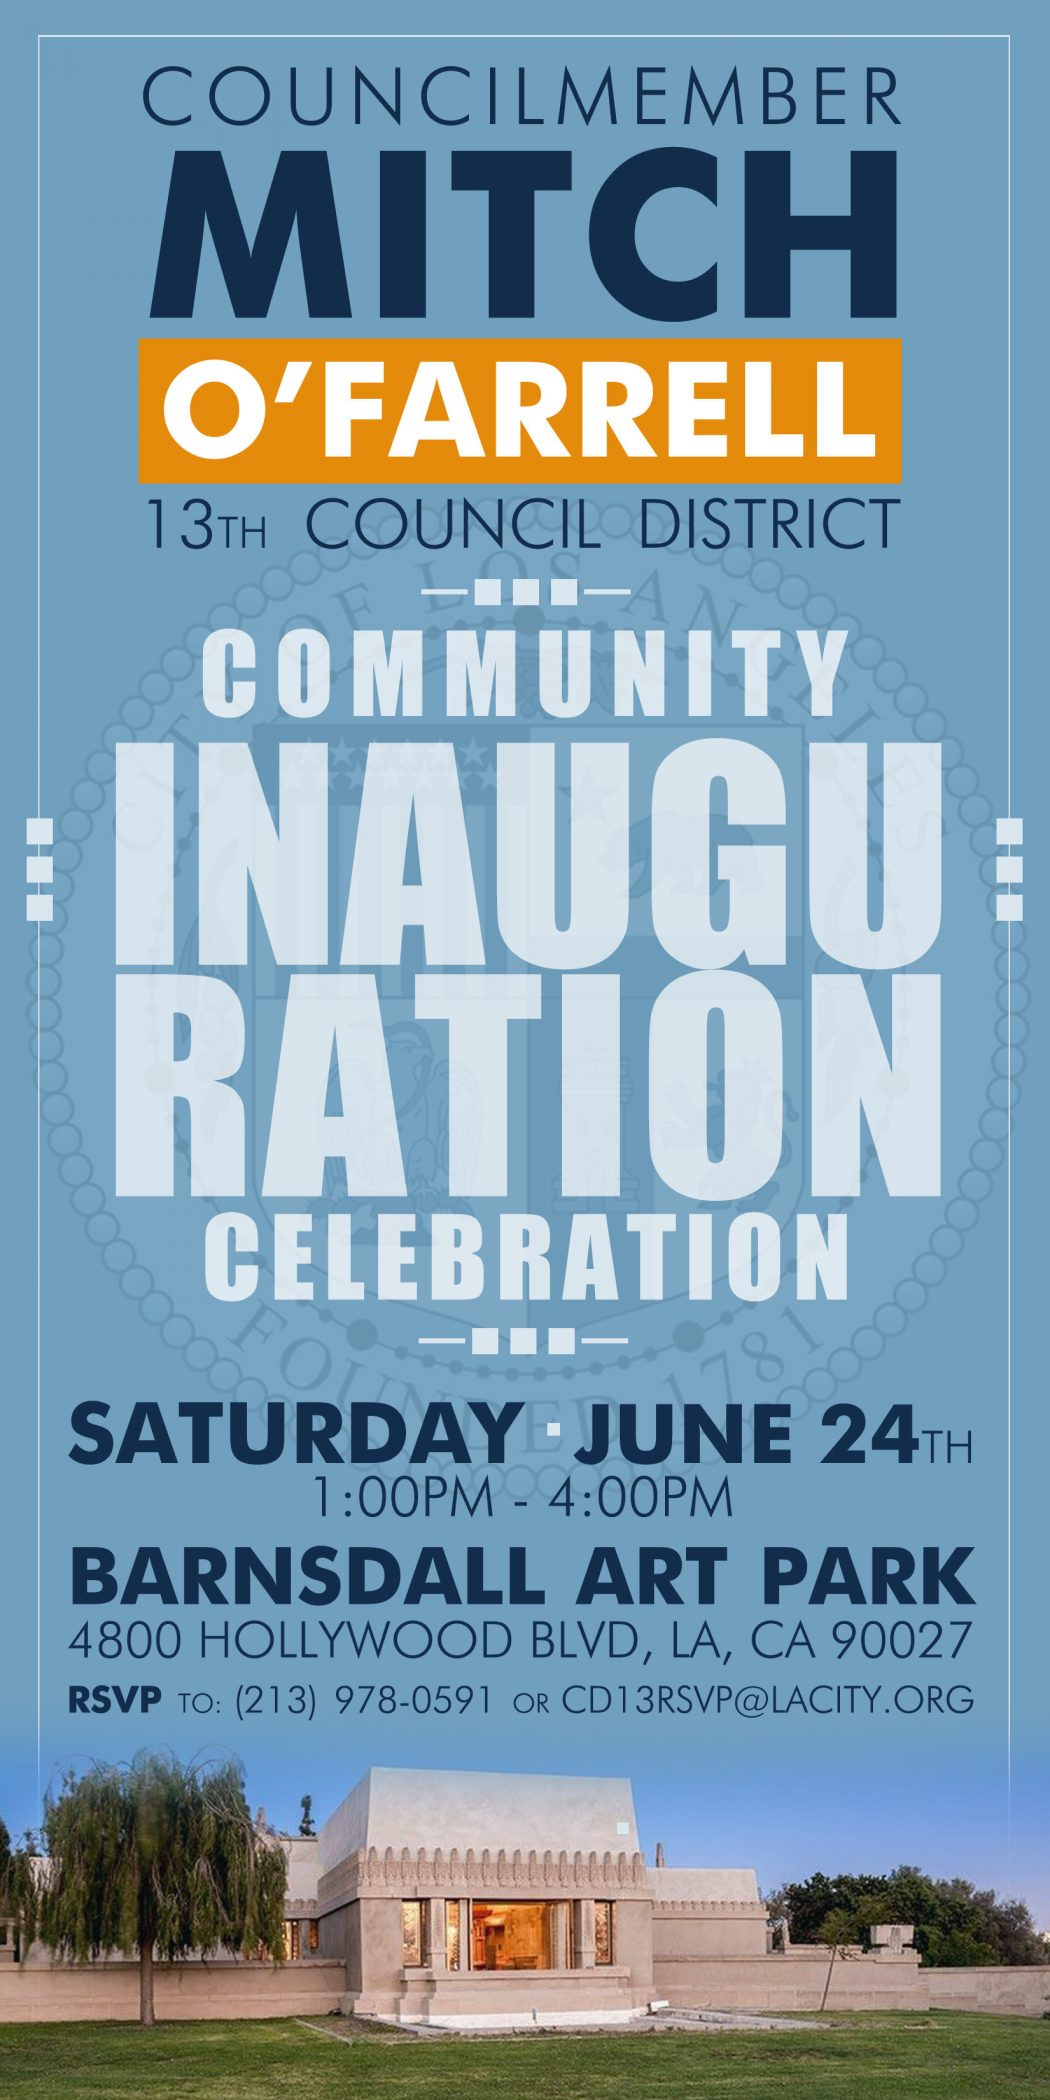 Councilmember Mitch O'Farrell Inauguration and Community Celebration | Silver Lake Realtor | Silver Lake Real Estate Agent